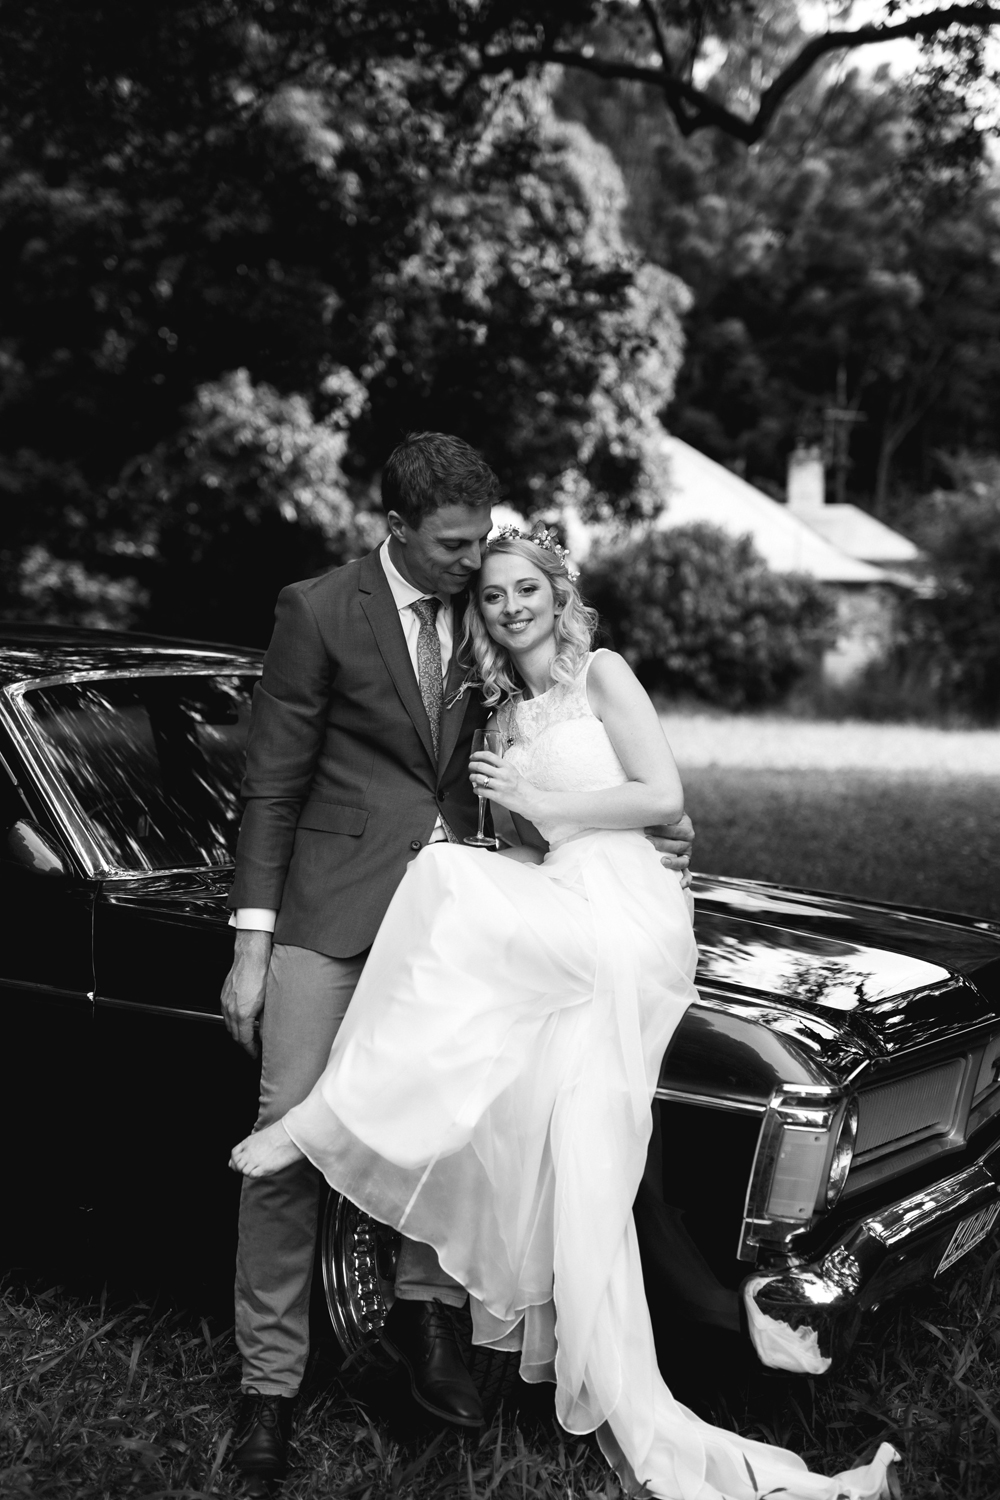 085-Byron-Bay-Wedding-Photographer-Carly-Tia-Photography.jpg